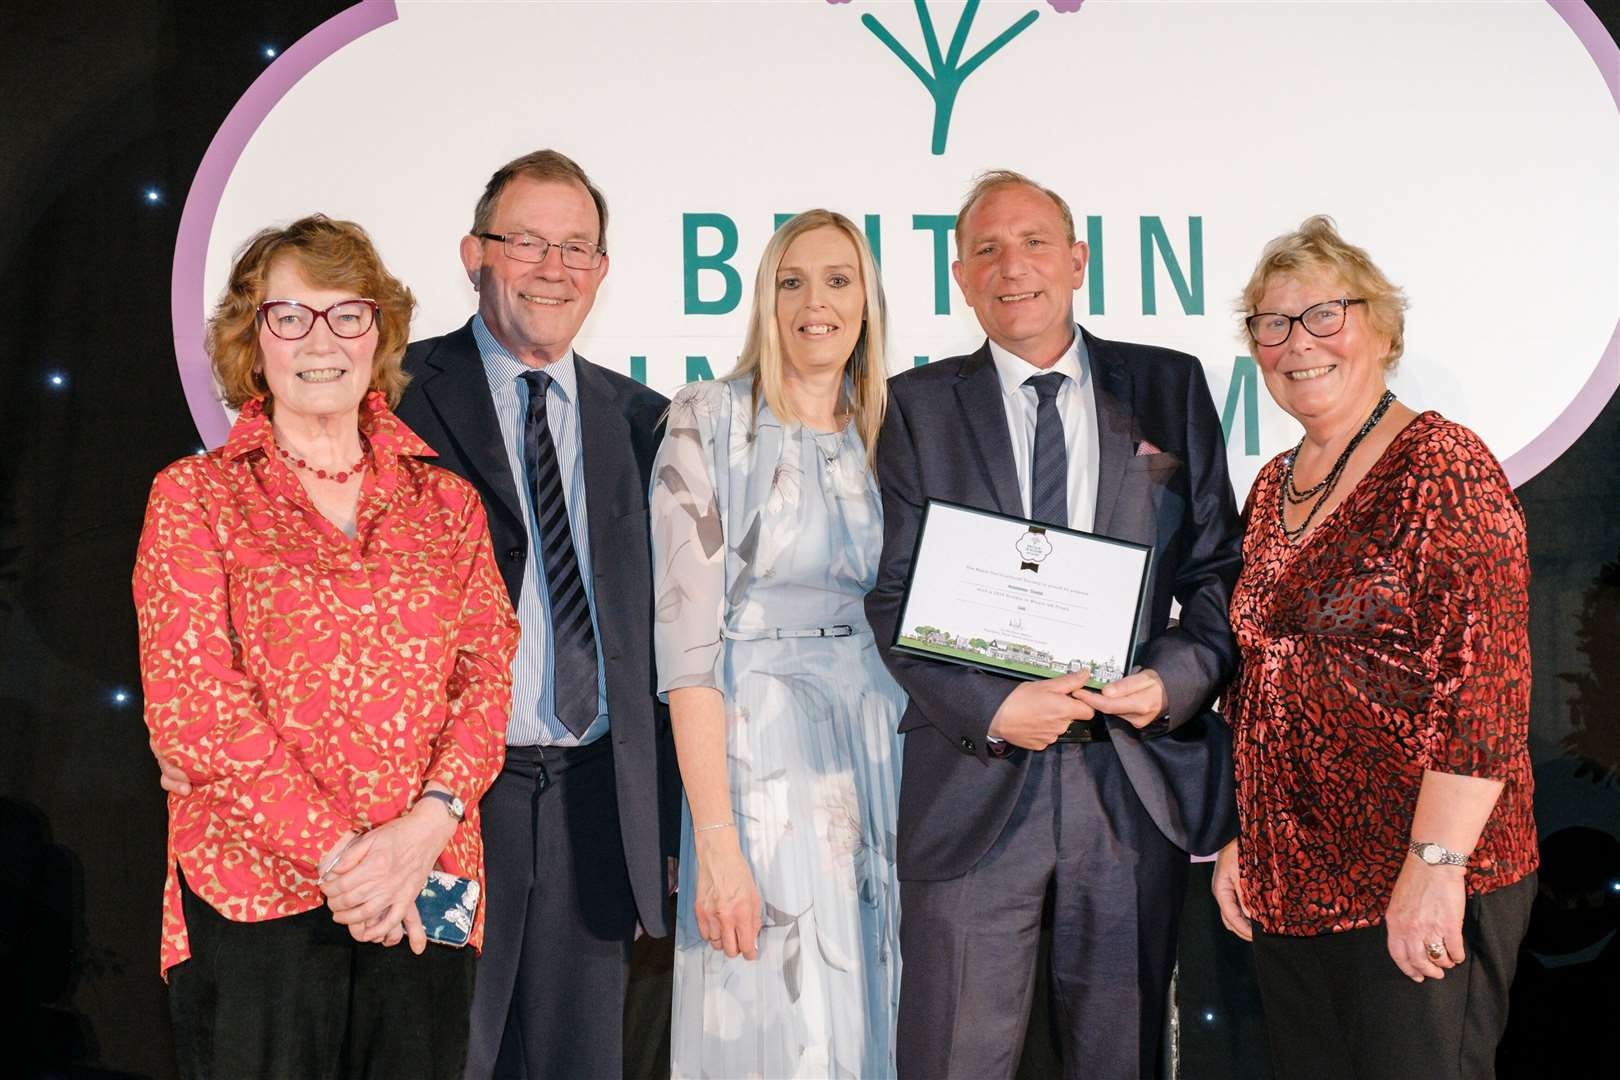 RHS Britain in Bloom Awards 2019 where Hunstanton won the Gold Award in the Coastal Category